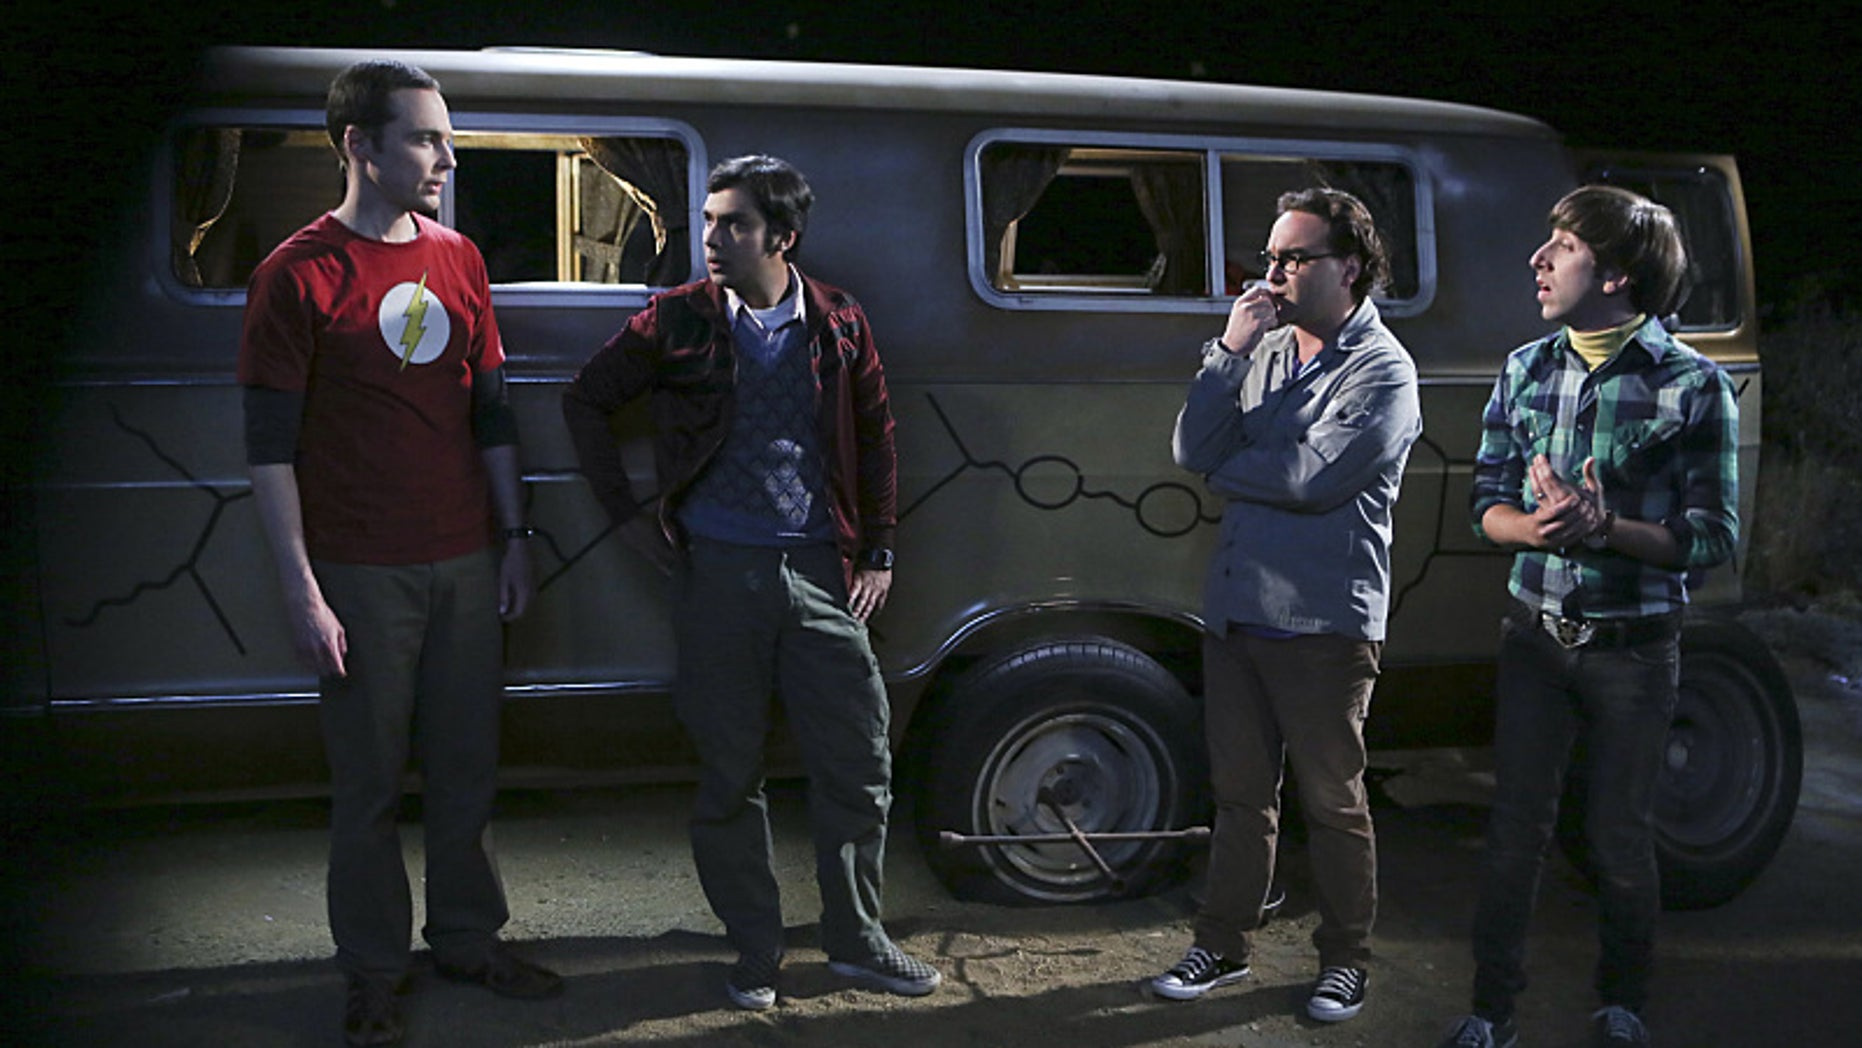 """The Bachelor Party Corrosion"" -- The guys' science skills are put to the test when they get a flat tire during Leonard's bachelor party weekend in Mexico, on THE BIG BANG THEORY, Monday, Oct. 5 (8:00-8:31 PM, ET/PT), on the CBS Television Network. Pictured left to right: Jim Parsons, Kunal Nayyar, Johnny Galecki and Simon Helberg Photo: Monty Brinton/CBS ©2015 CBS Broadcasting, Inc. All Rights Reserved"